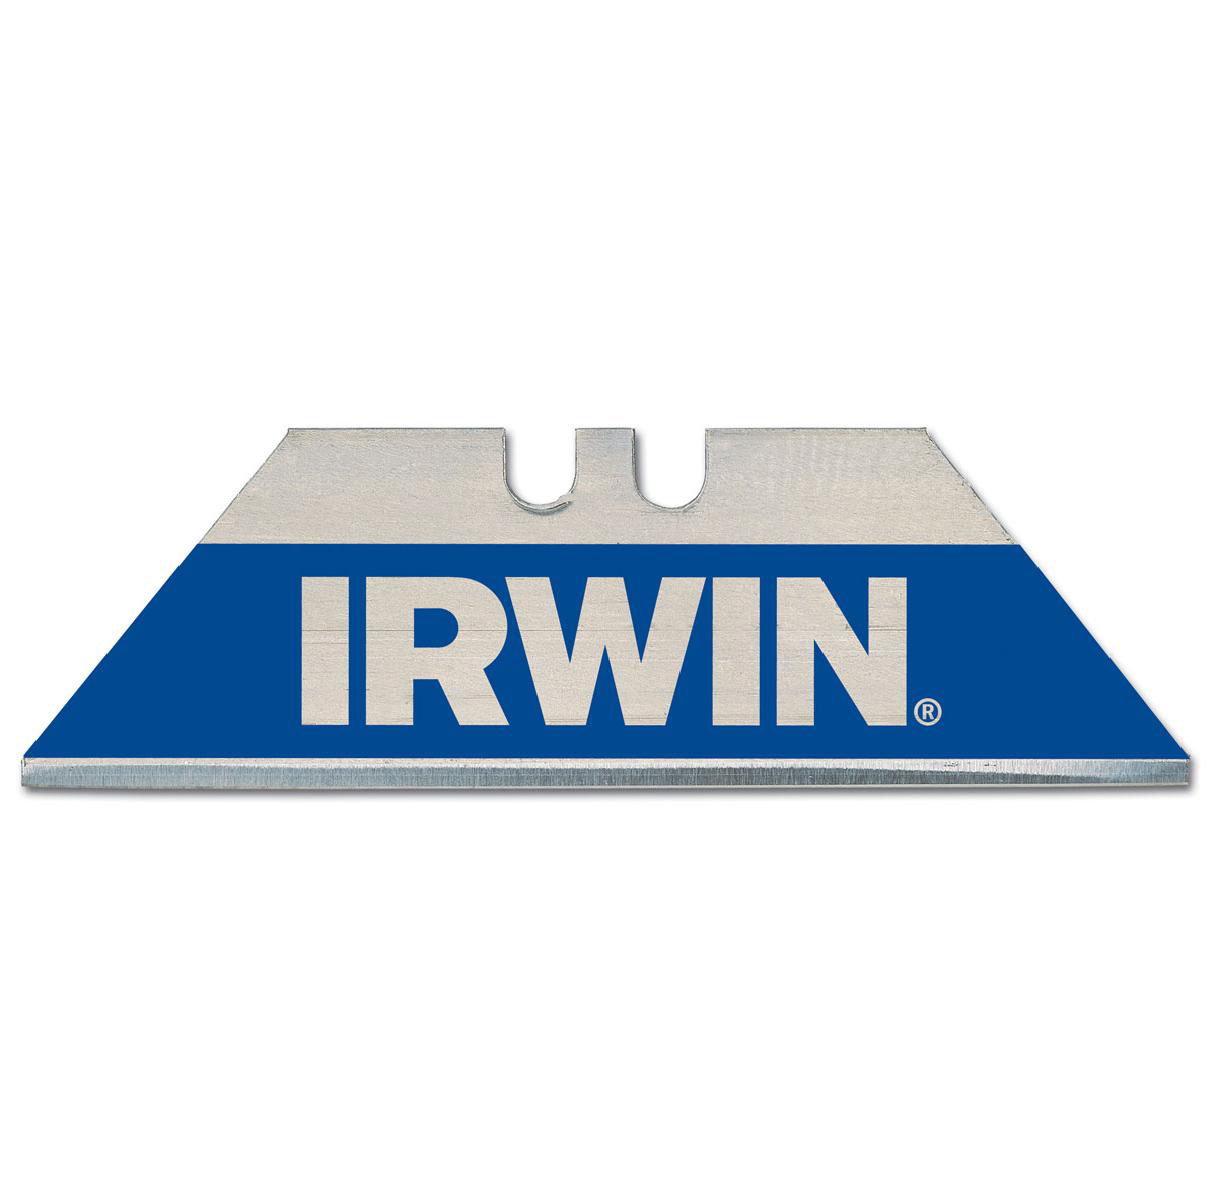 IRWIN 10504241 - Bimetal Knife Blade (Pack of 10 Pcs)